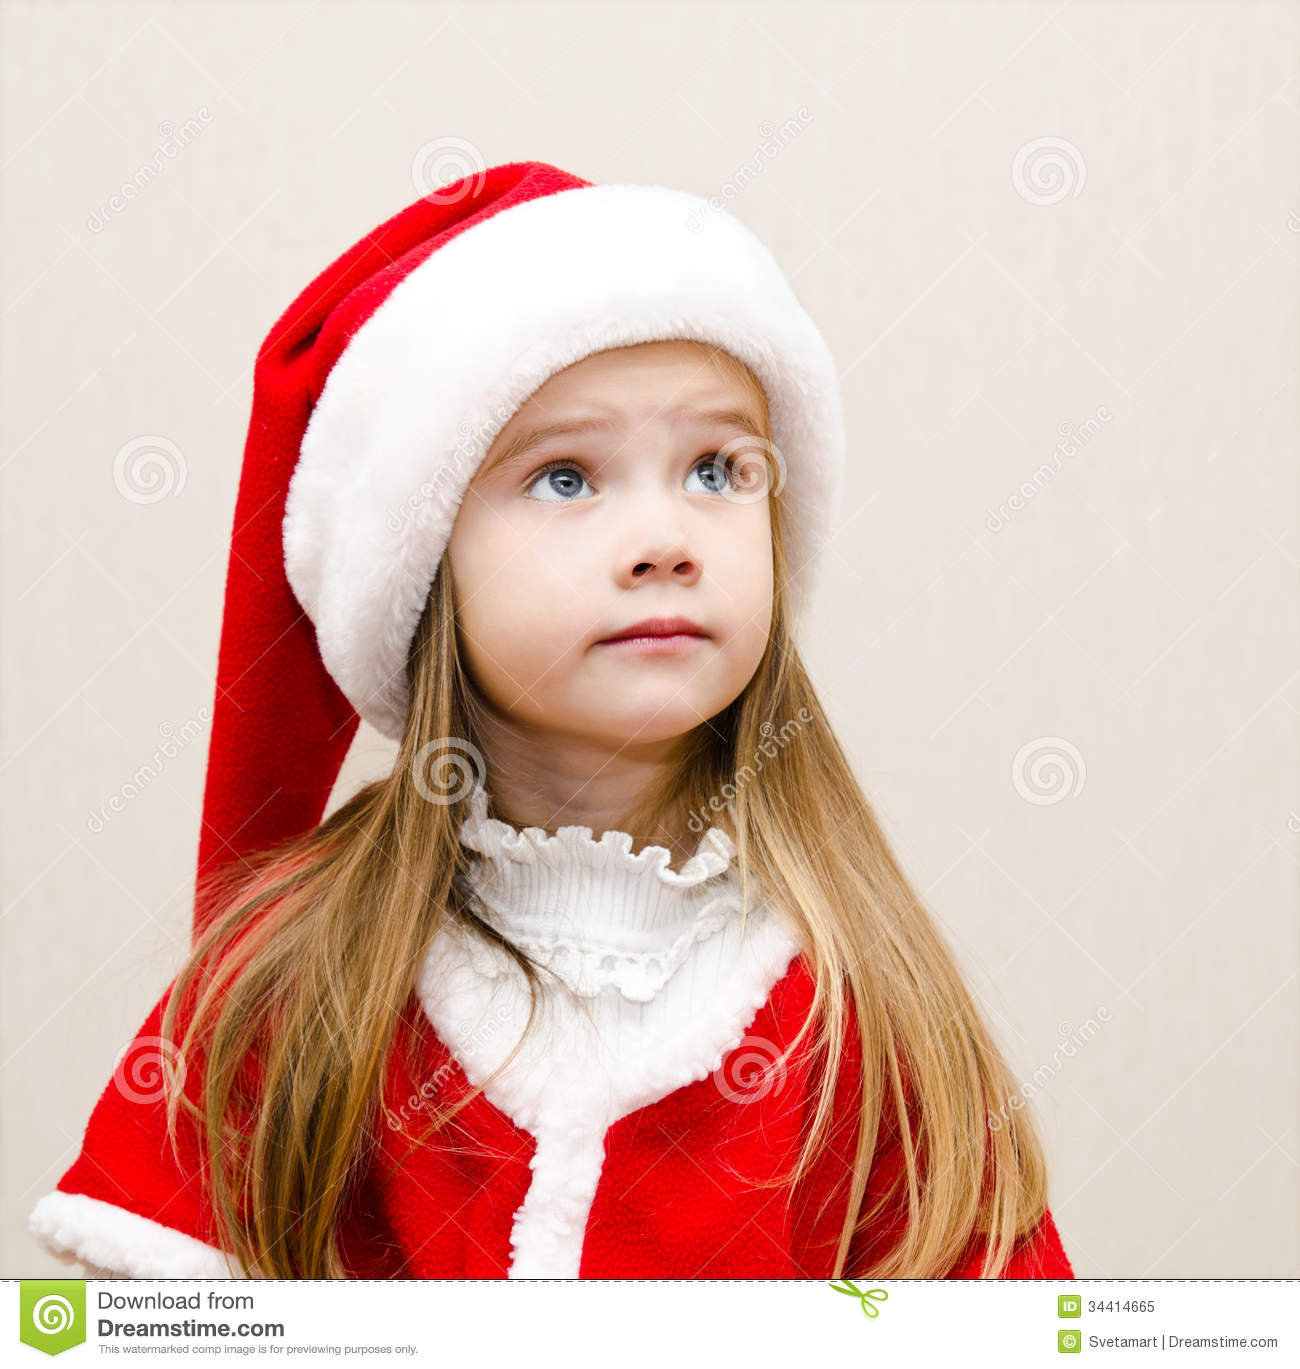 Cute Little Girl In Christmas Hat Dreaming And Looking Up